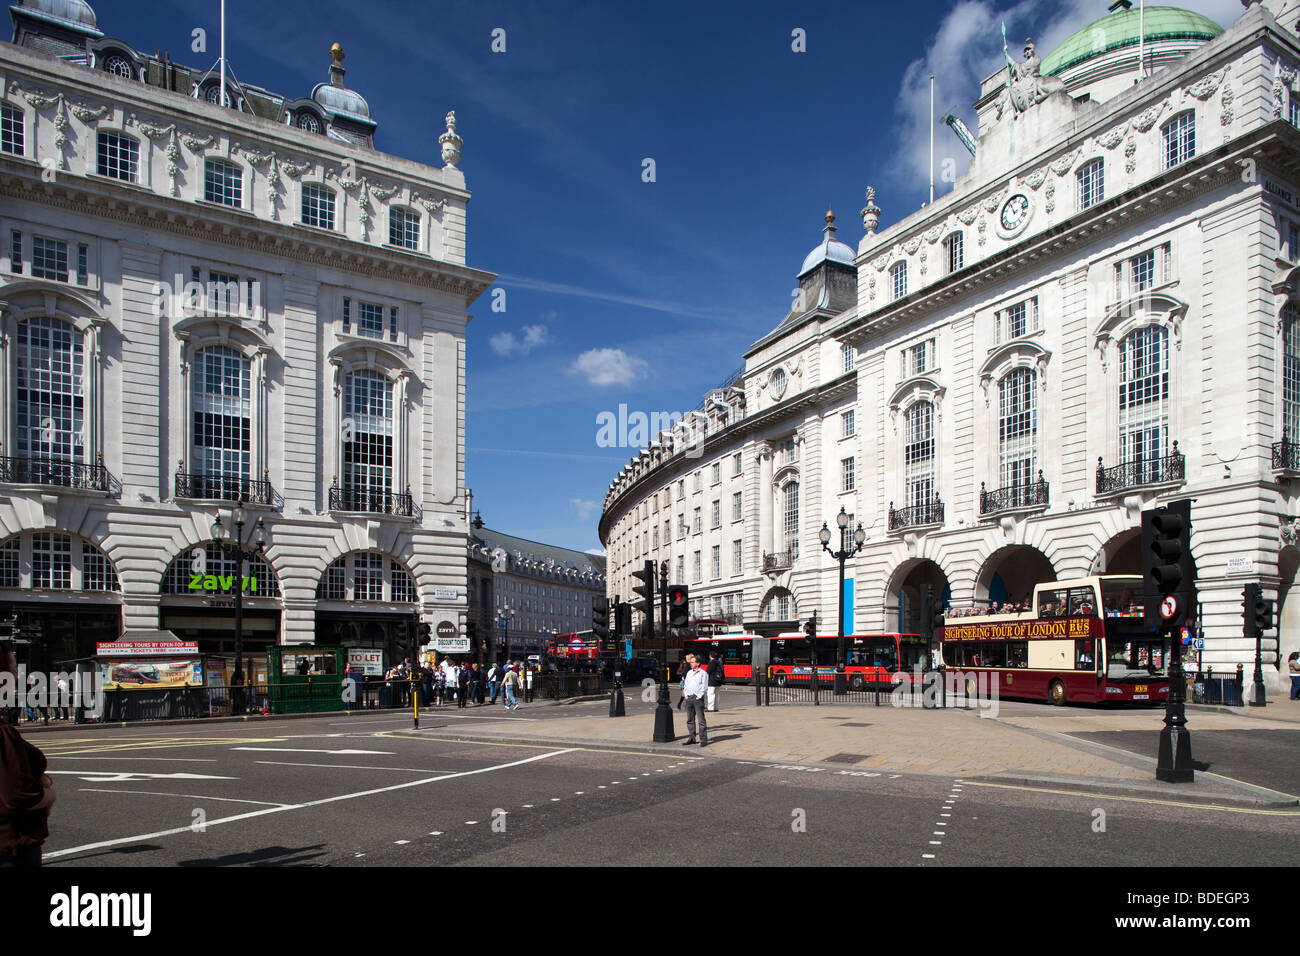 Regent Street from Picadilly Circus, Westminster, London, England, United Kingdom - Stock Image